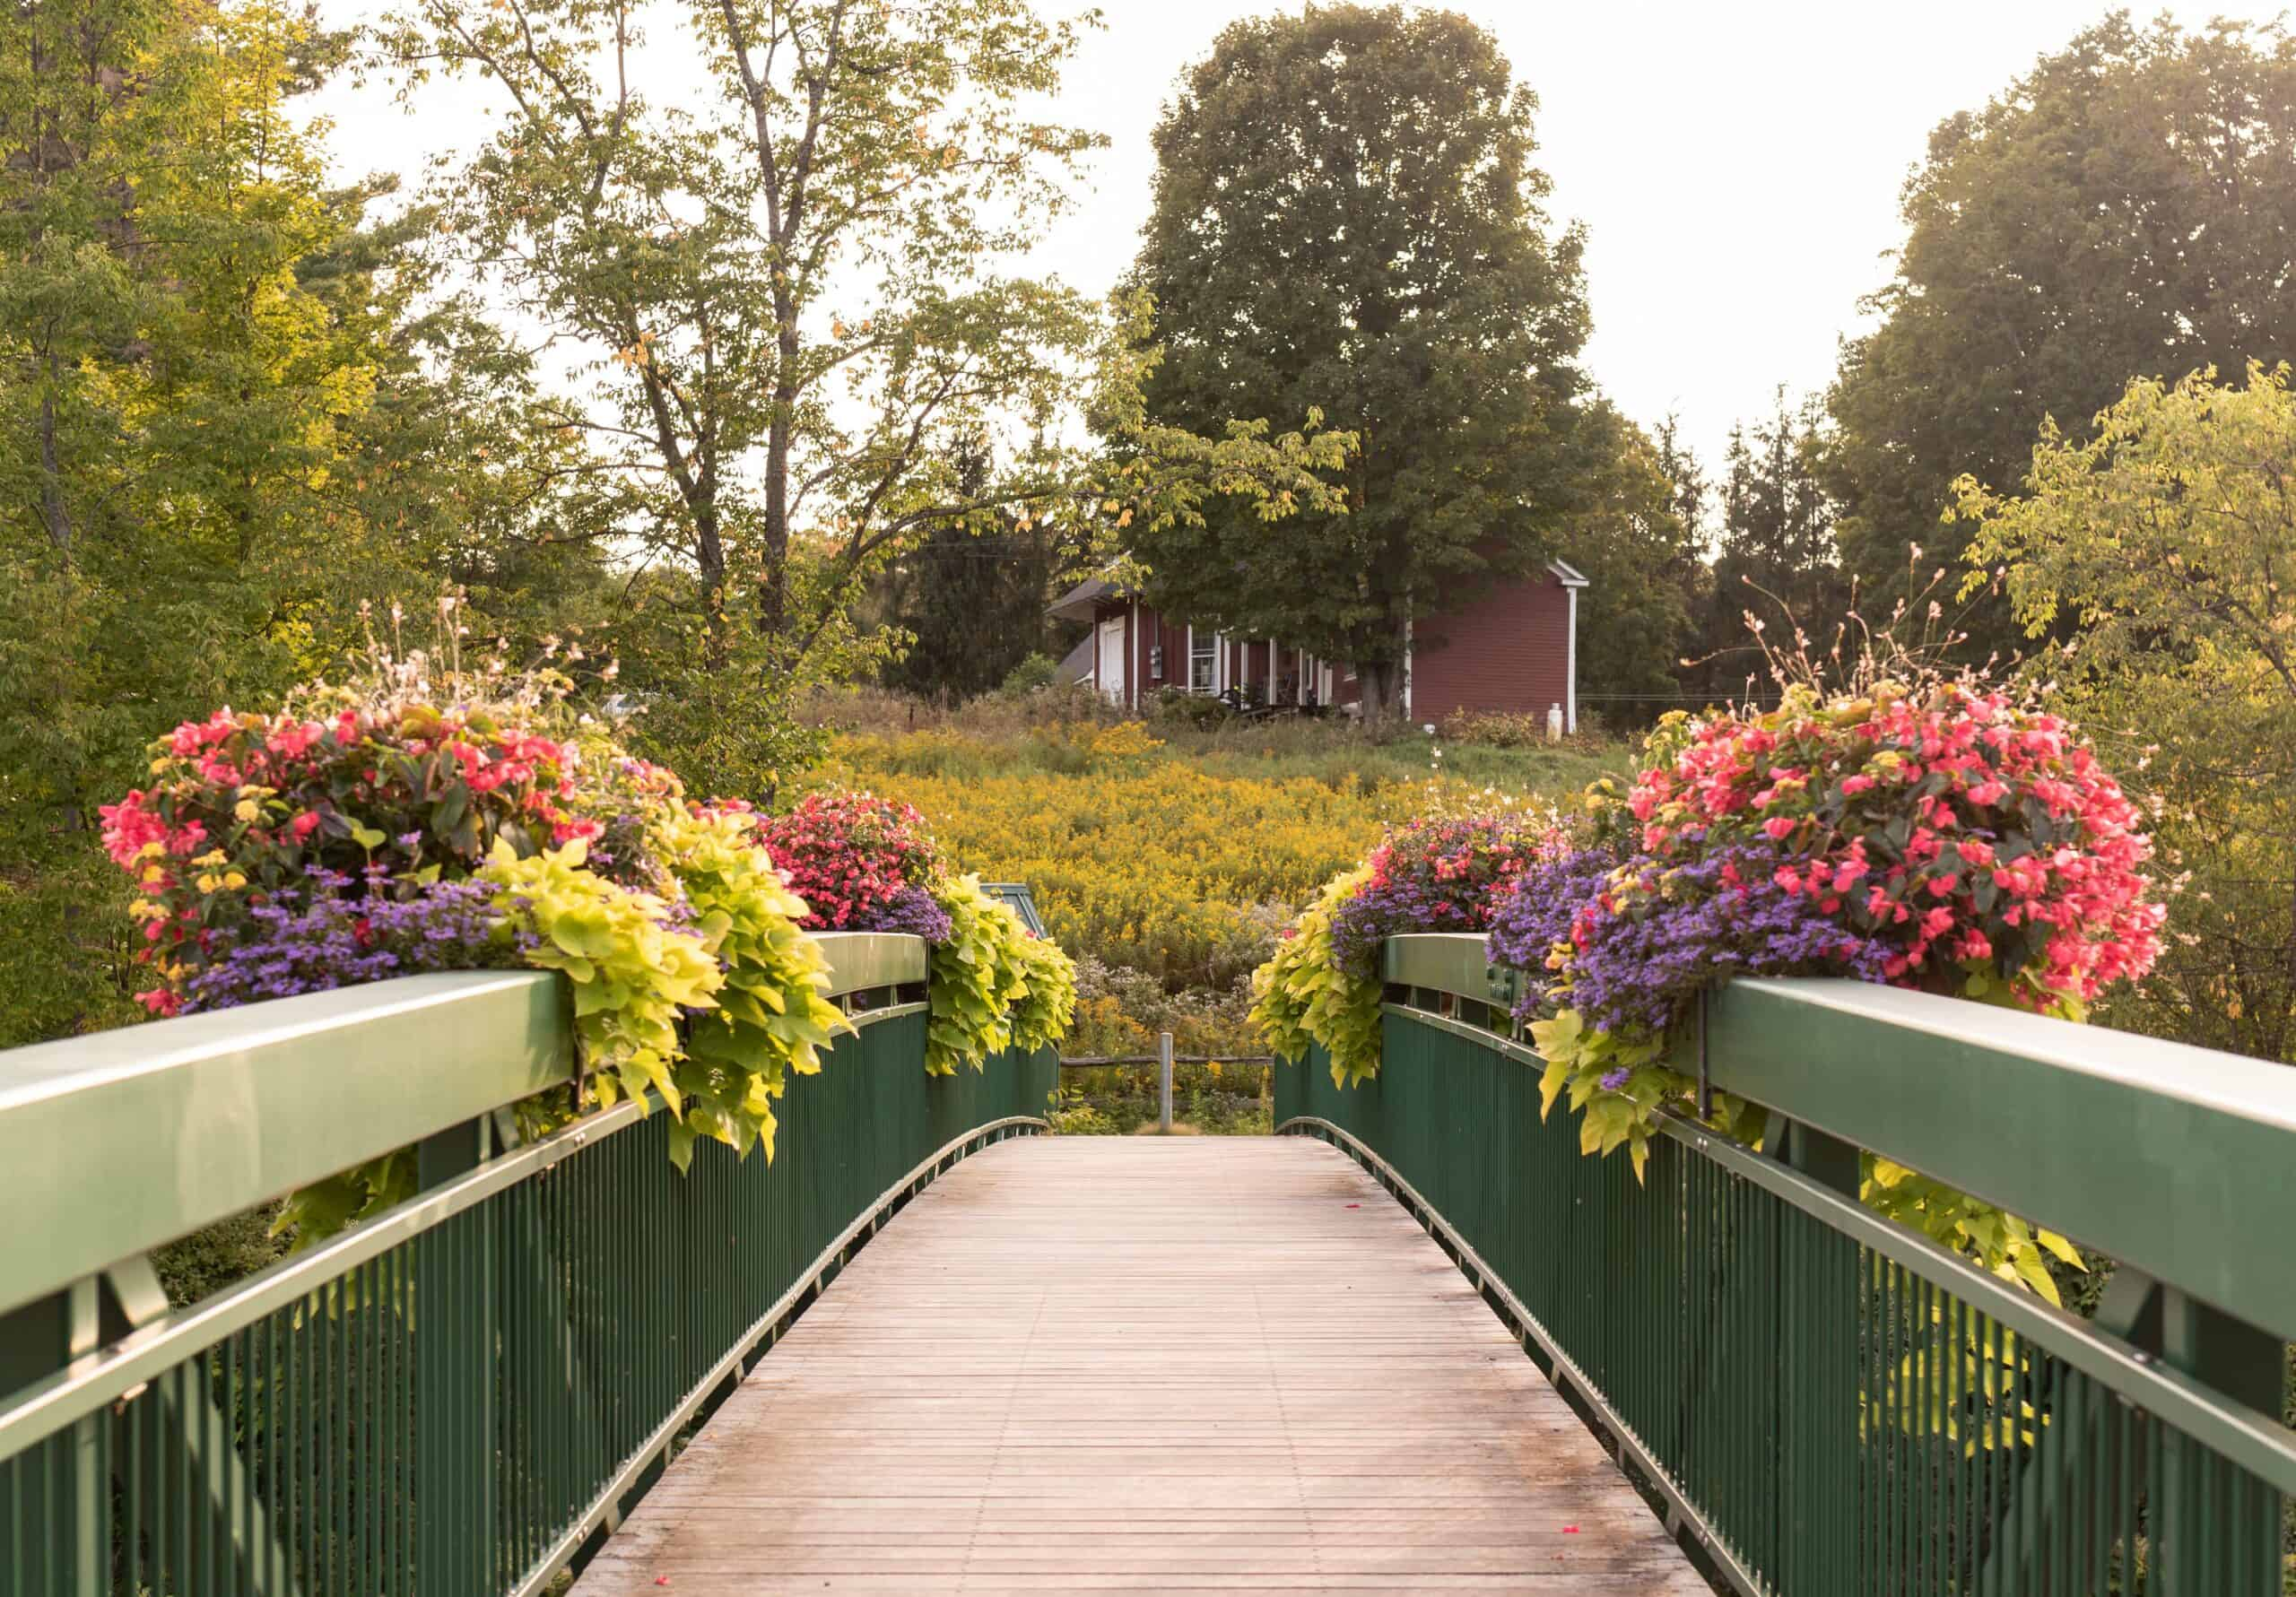 A footbridge framed with flower boxes in Wilmington VT